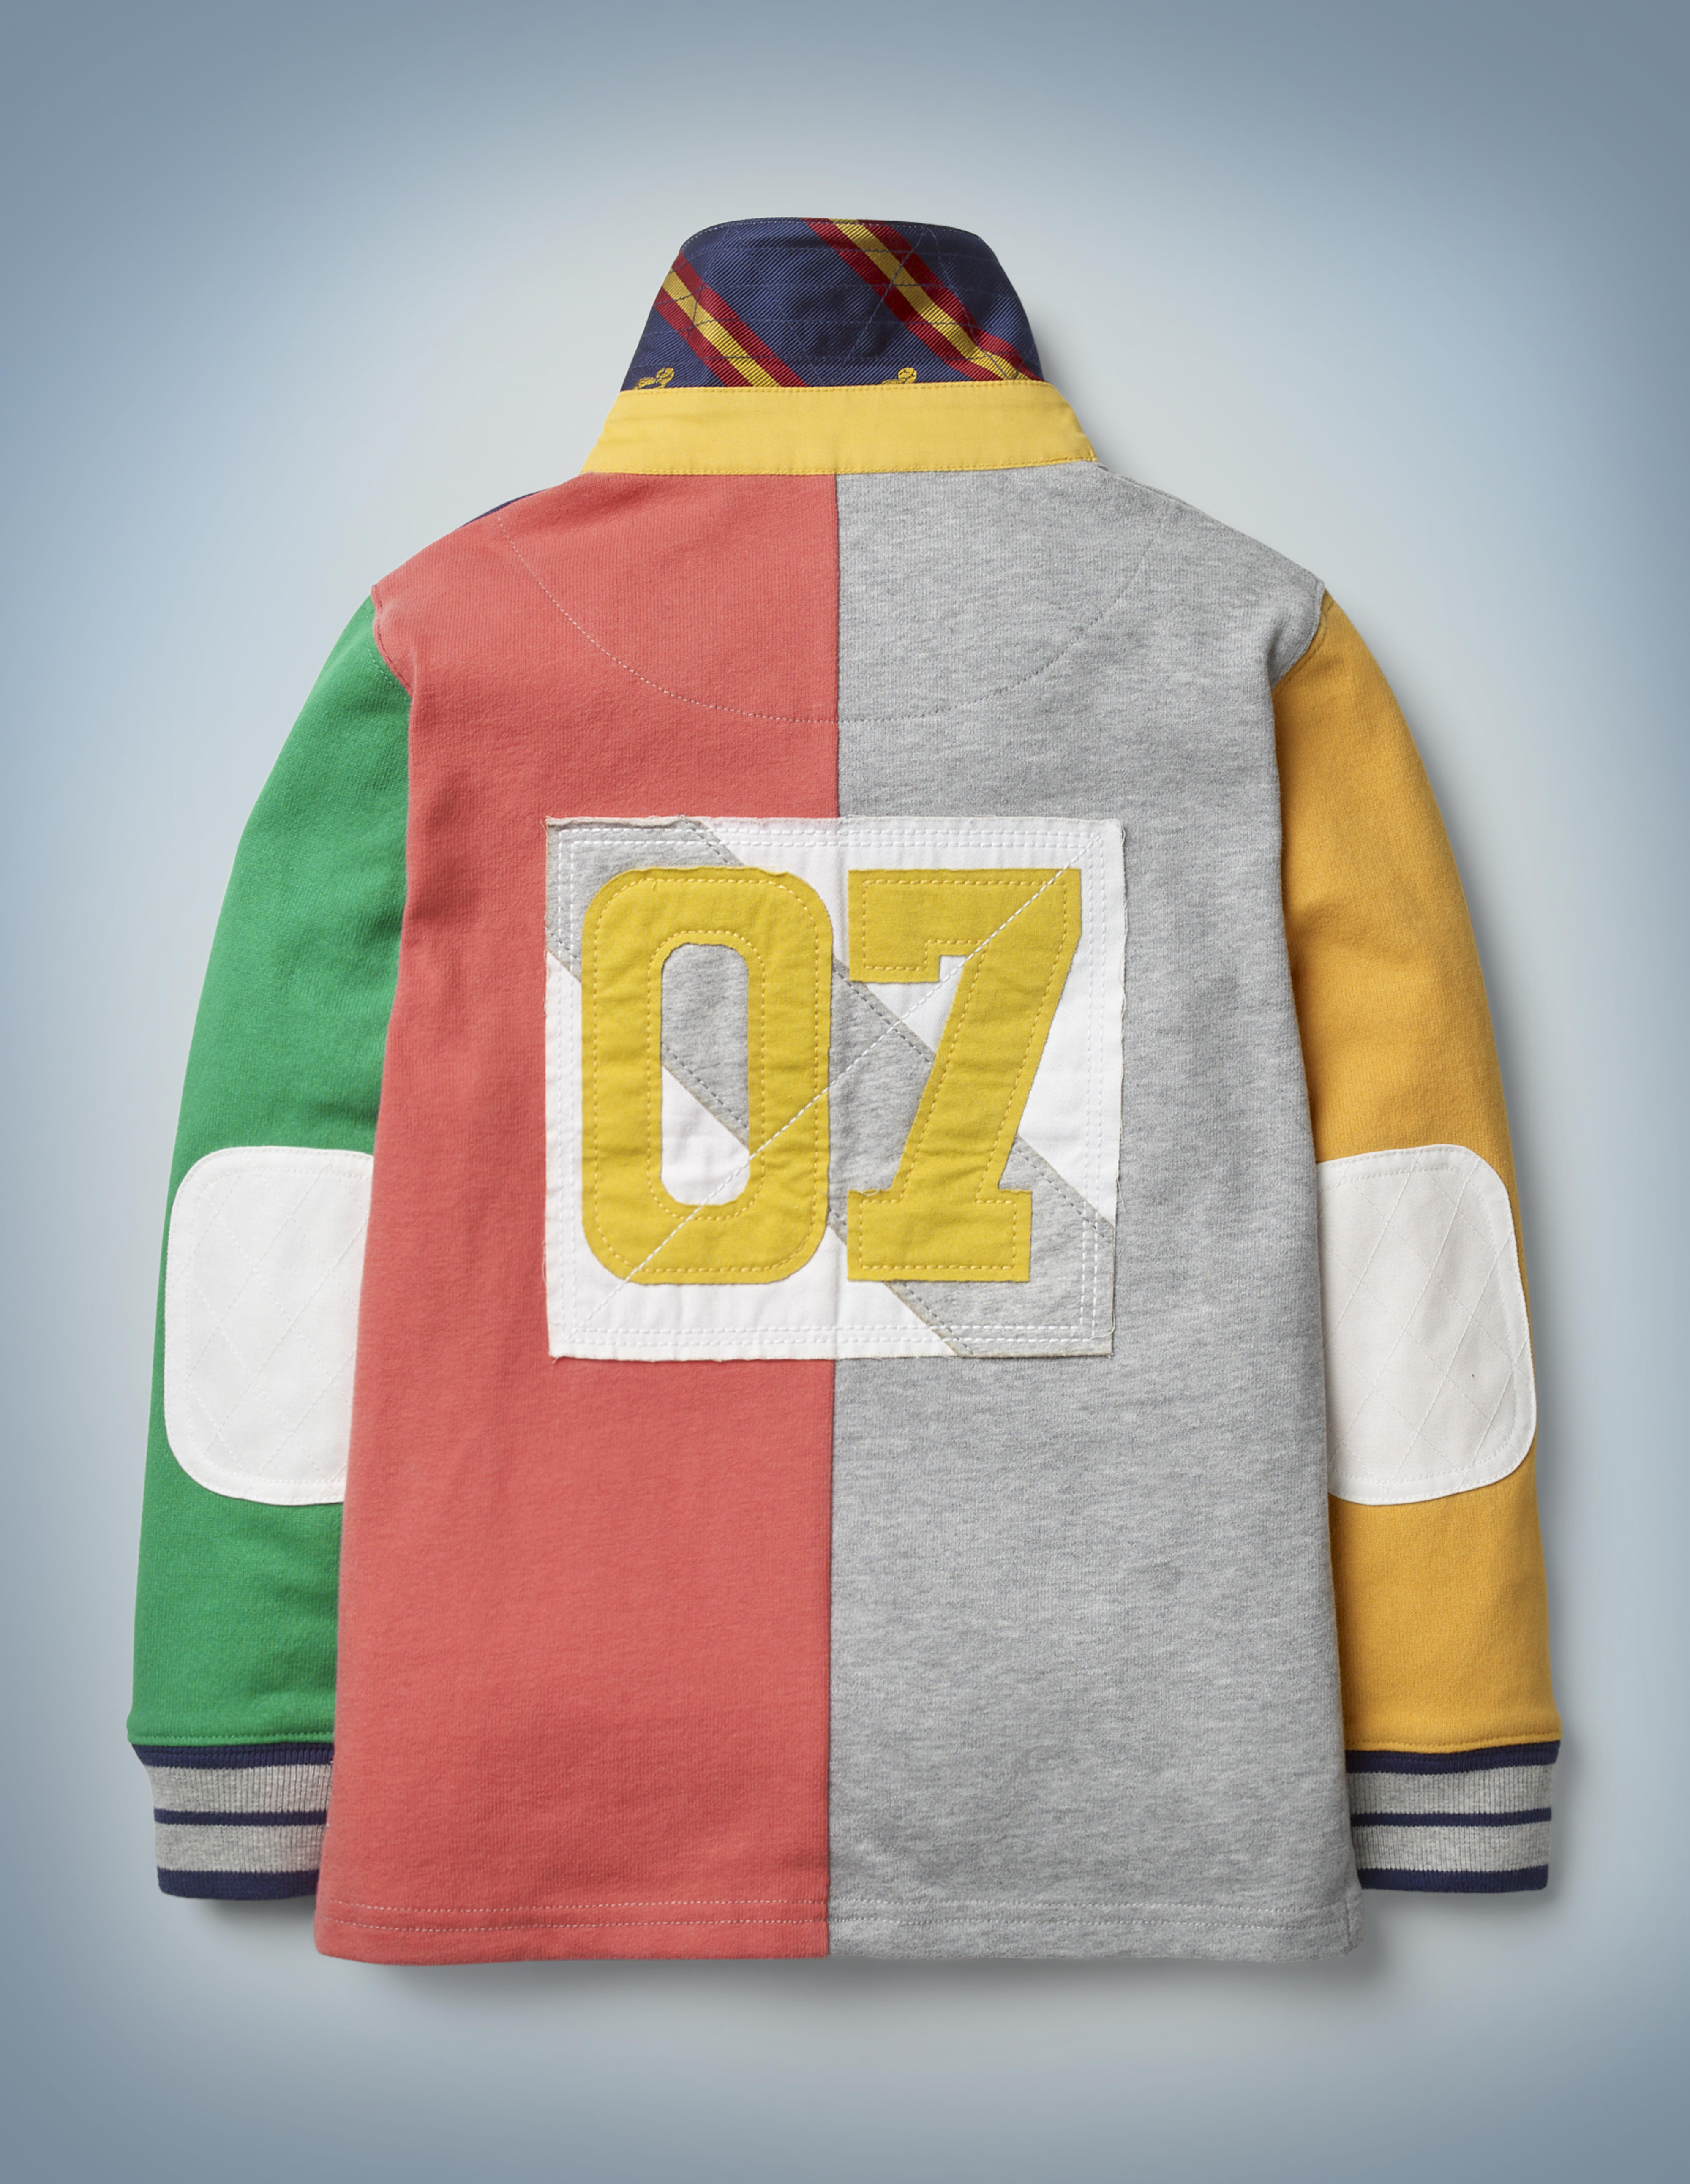 This view of the back of the Mini Boden Hogwarts Rugby Shirt, multi-color, shows a patch featuring Harry Potter's Quidditch number: 07. It retails at £30.